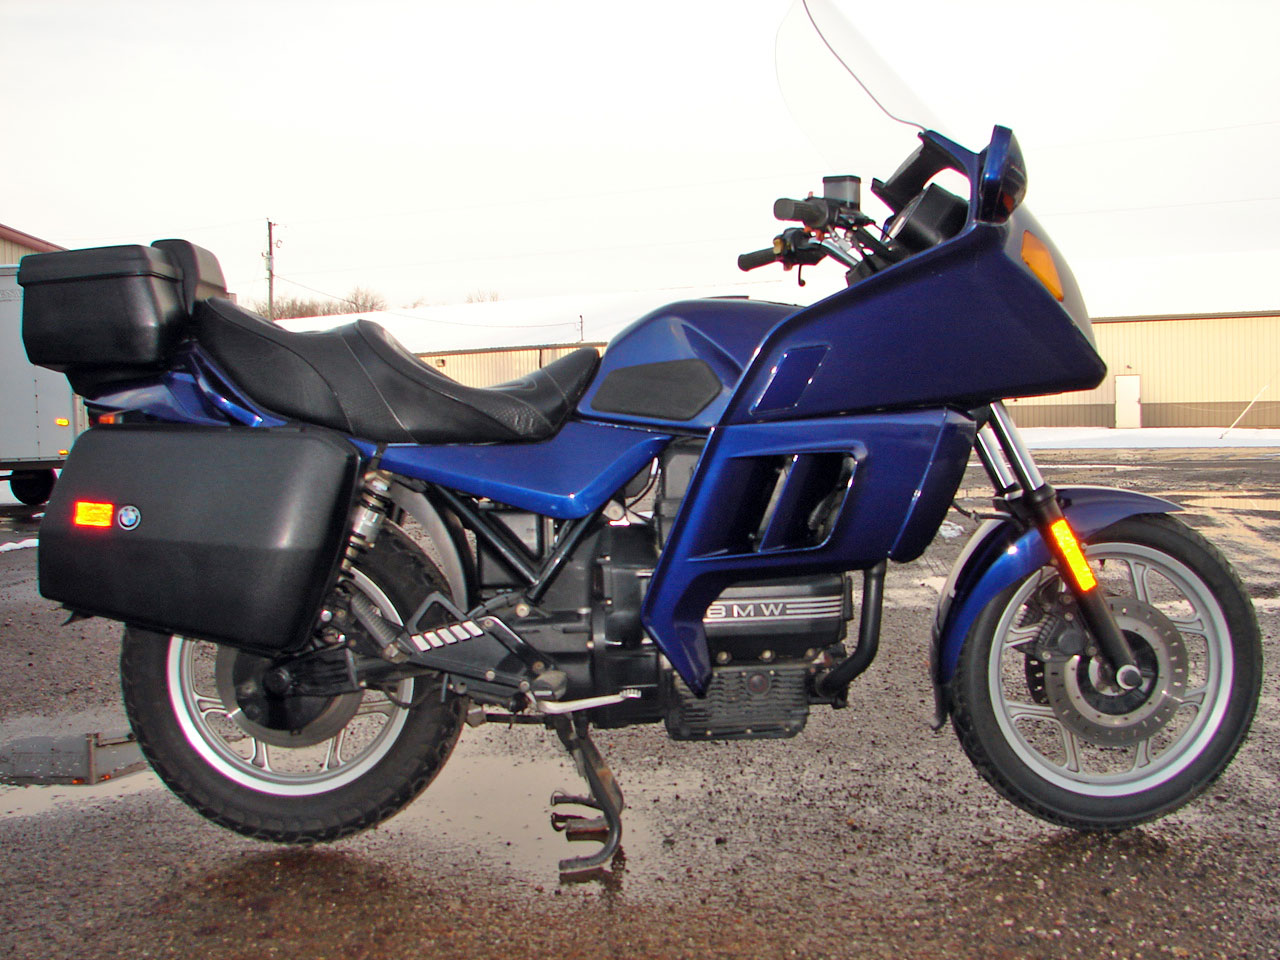 BMW K75RT 1990 images #5122